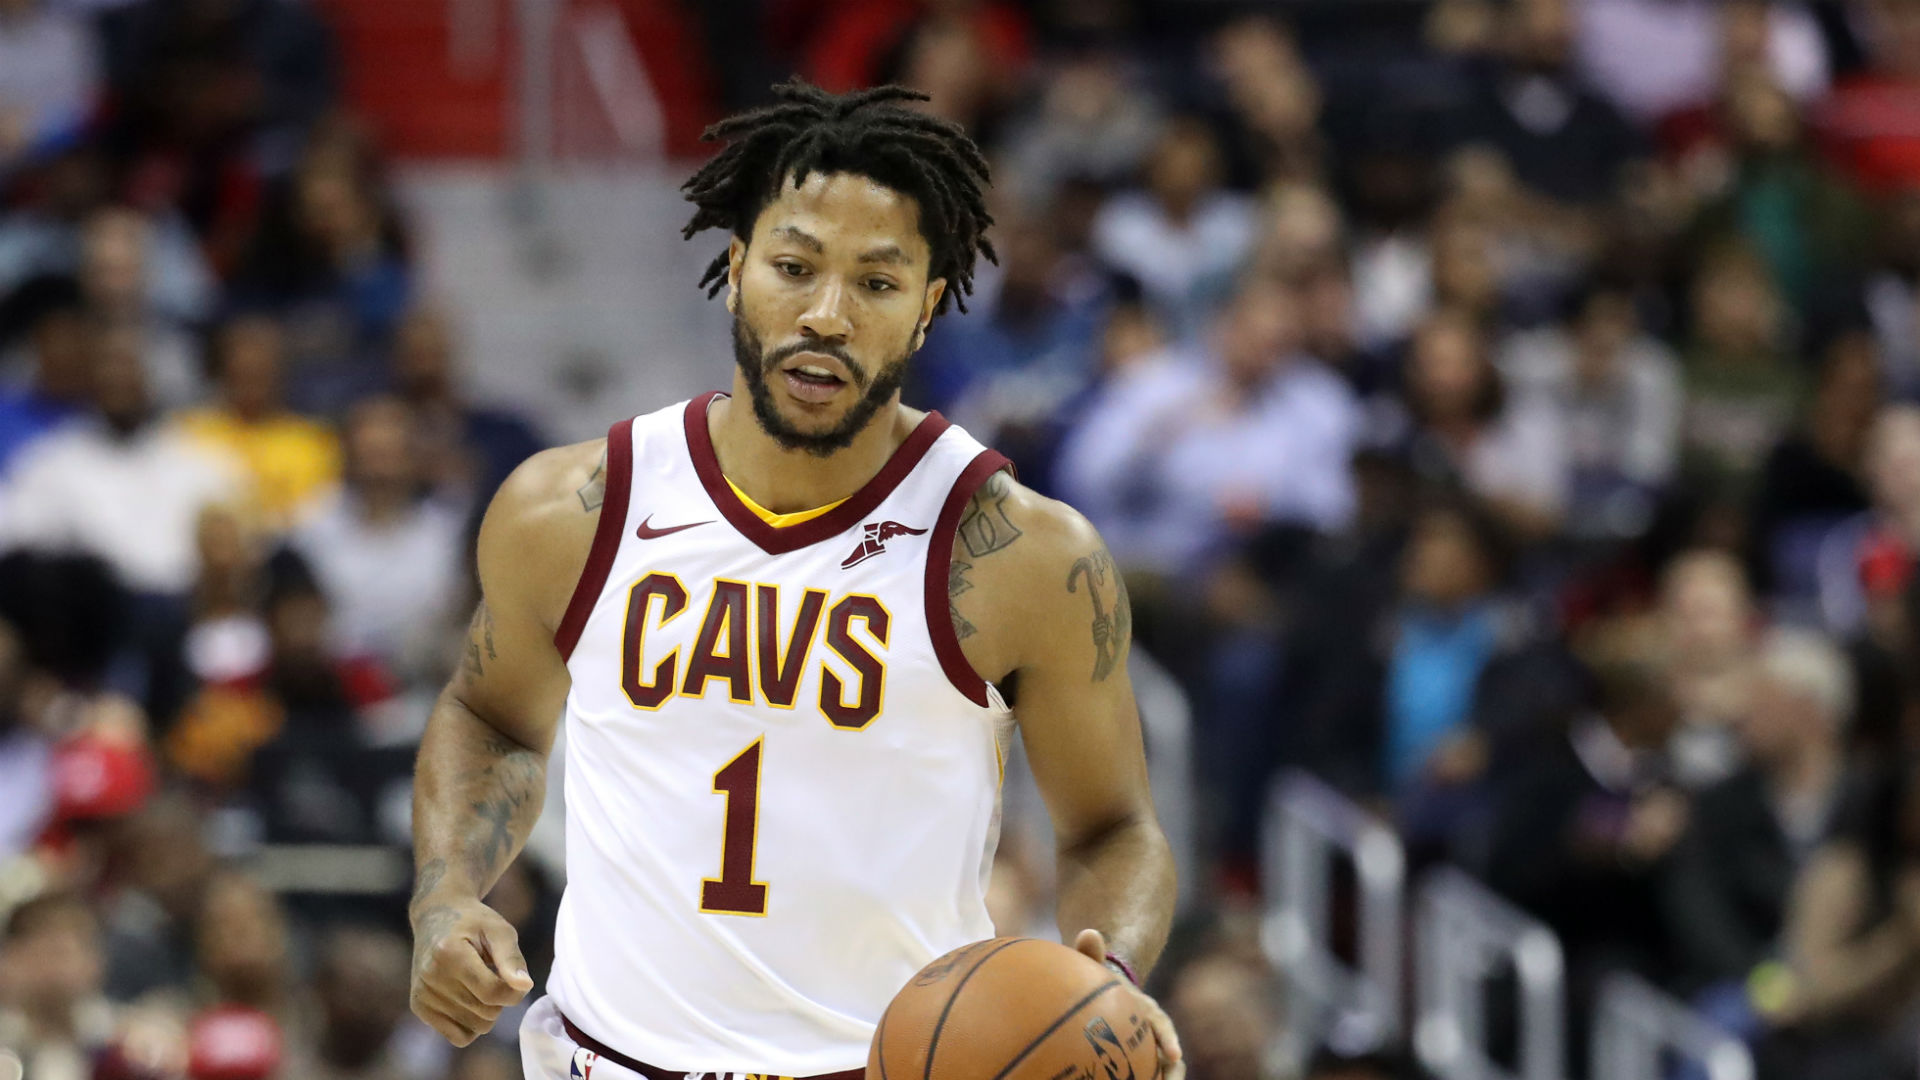 Derrick Rose away from Cavs, evaluating future in National Basketball Association